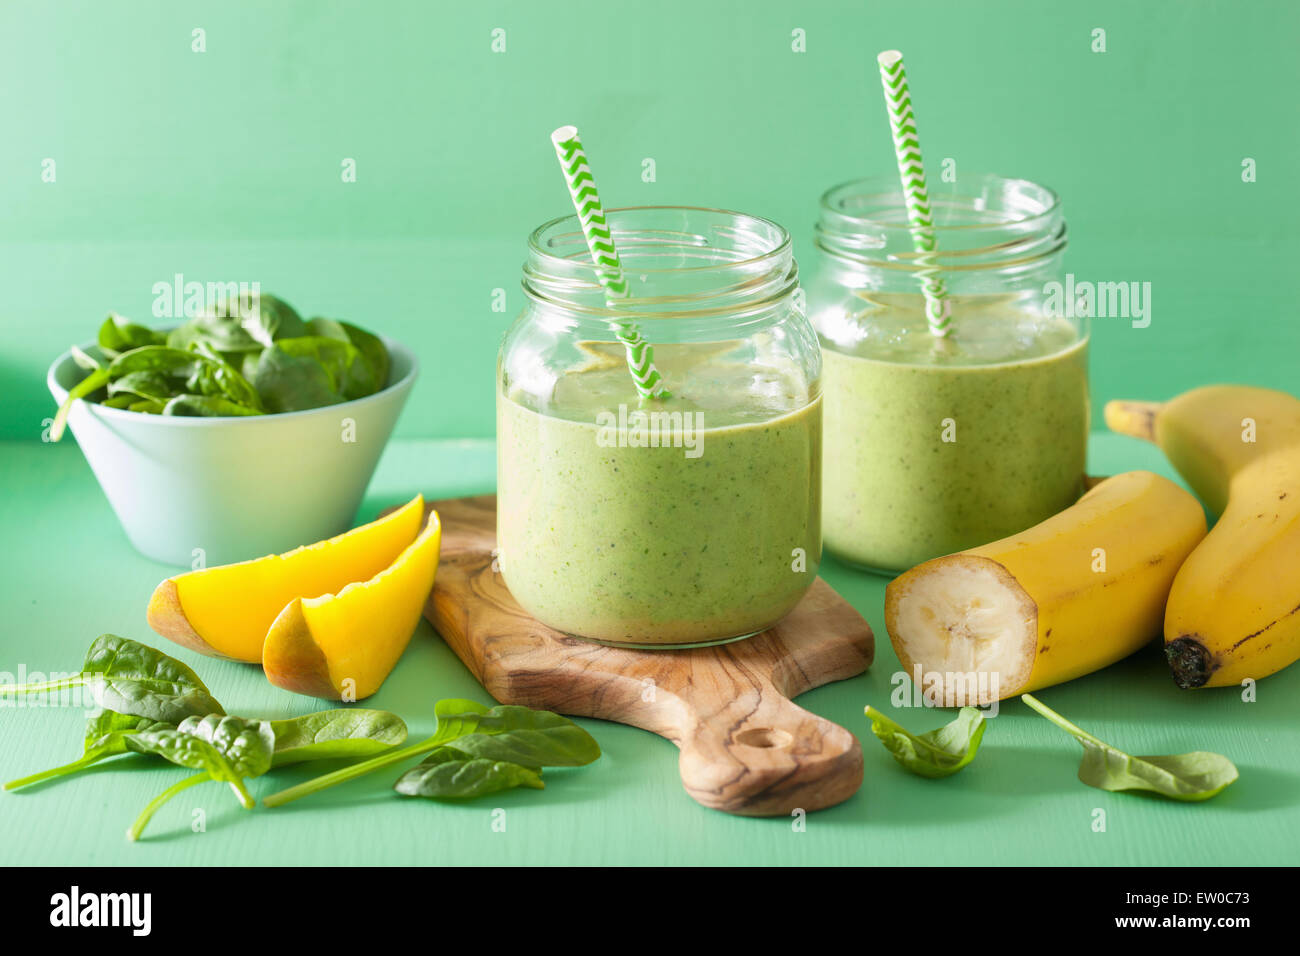 healthy green smoothie with spinach mango banana in glass jars - Stock Image